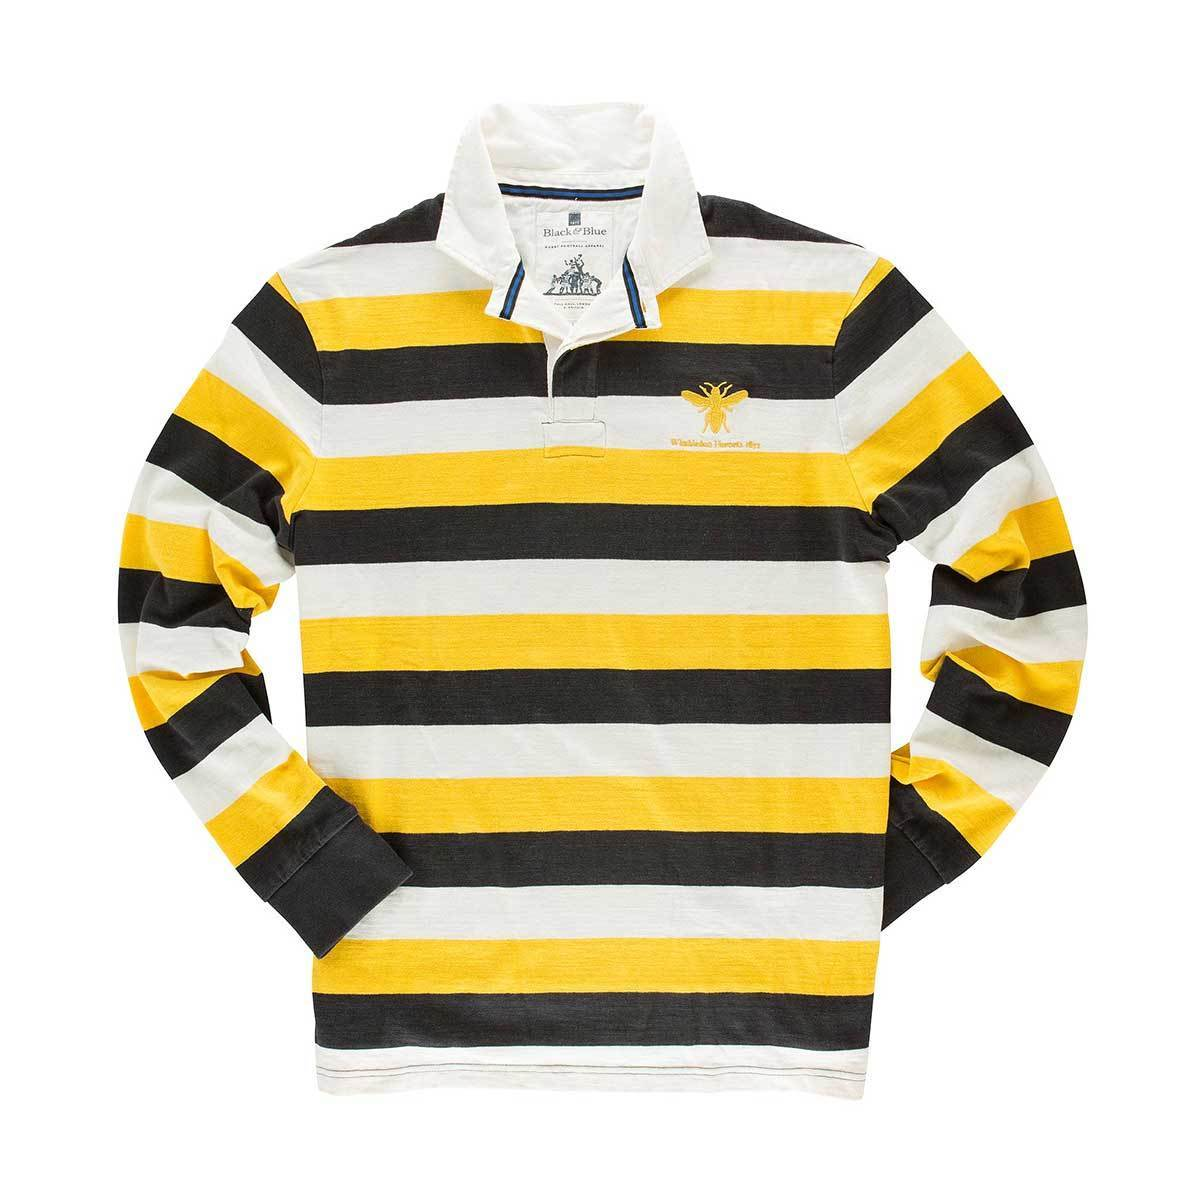 Black & Blue 1871 | Wimbledon Hornets 1871 Rugby Shirt | Heavy Cotton Rugby Shirt